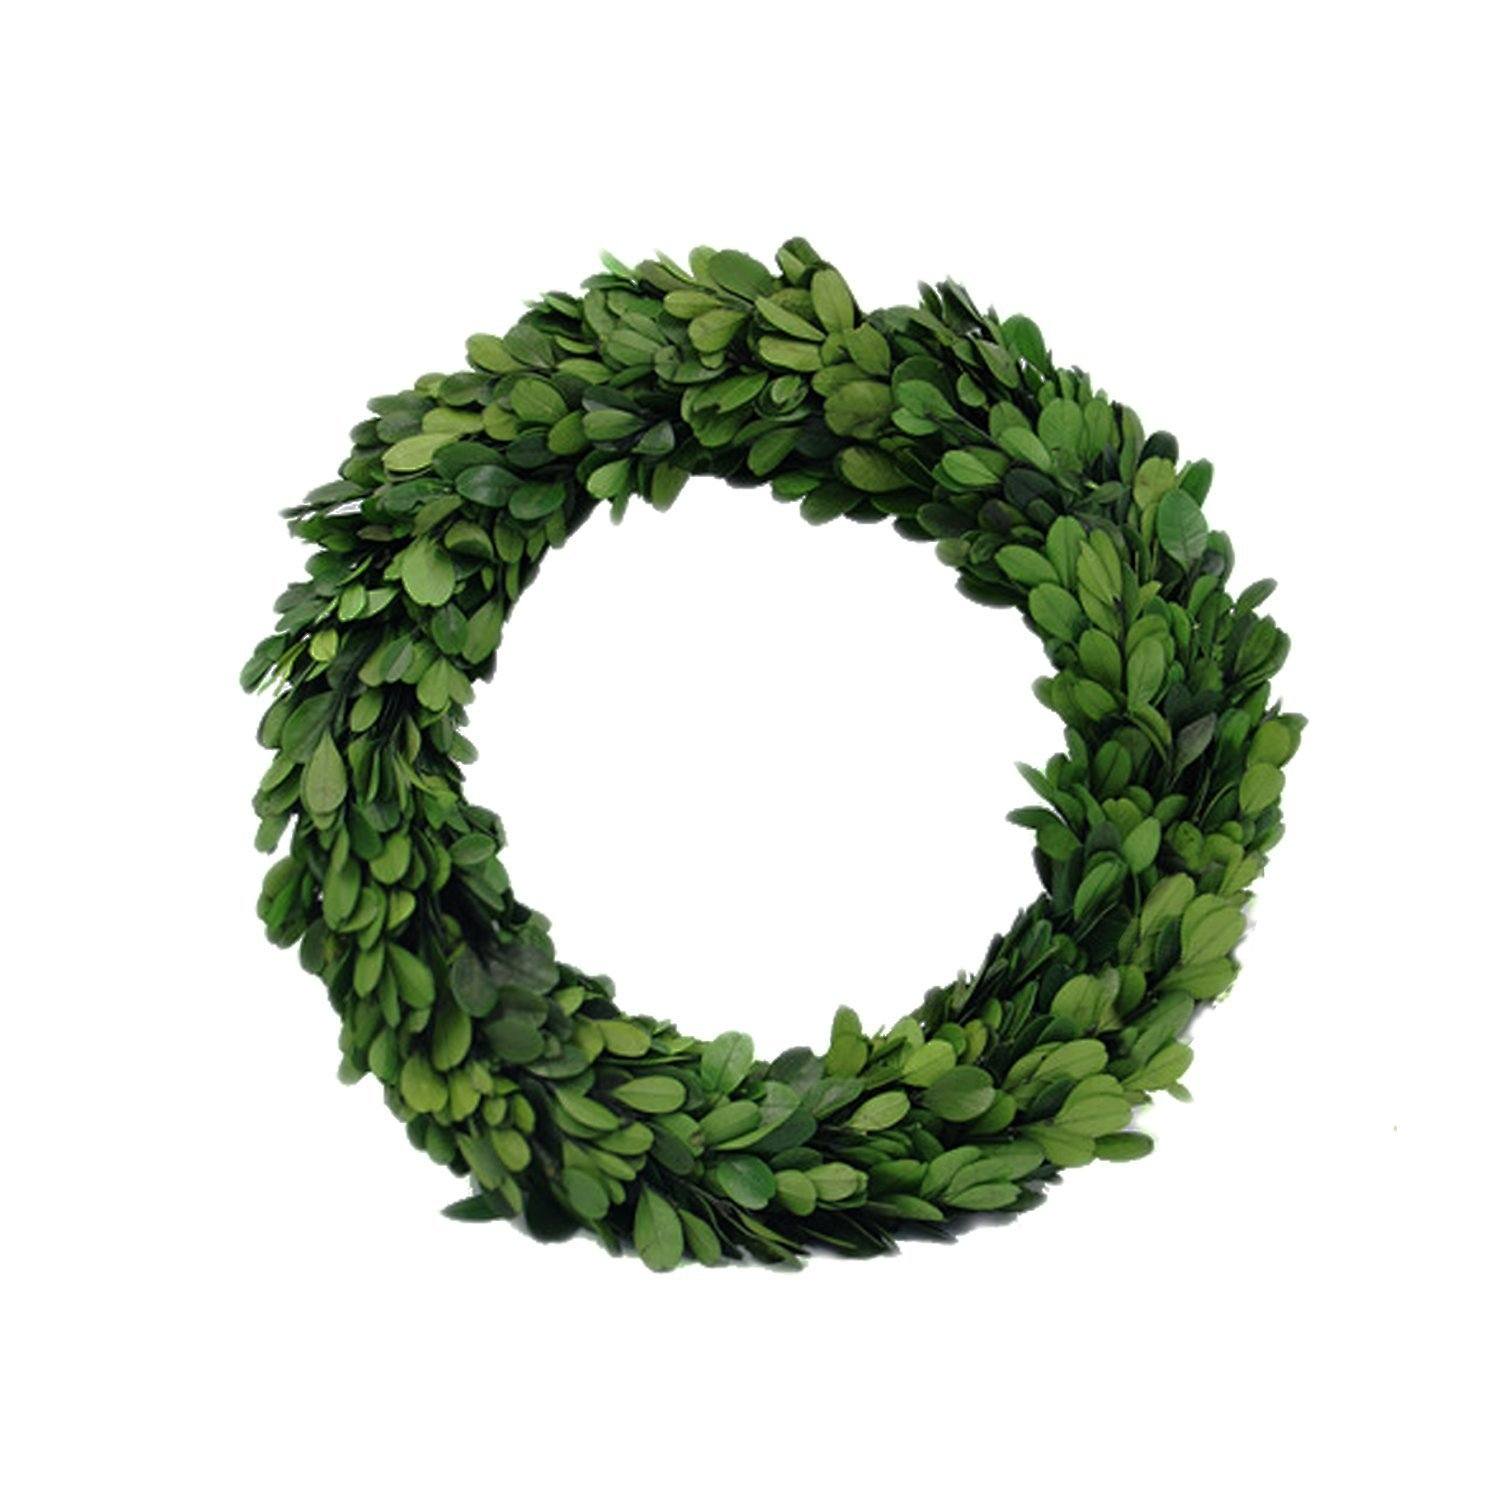 D.Jacware Preserved Boxwood Wreath Indoor Wreath Round Preserved Garden Boxwood Wreath 10 inch